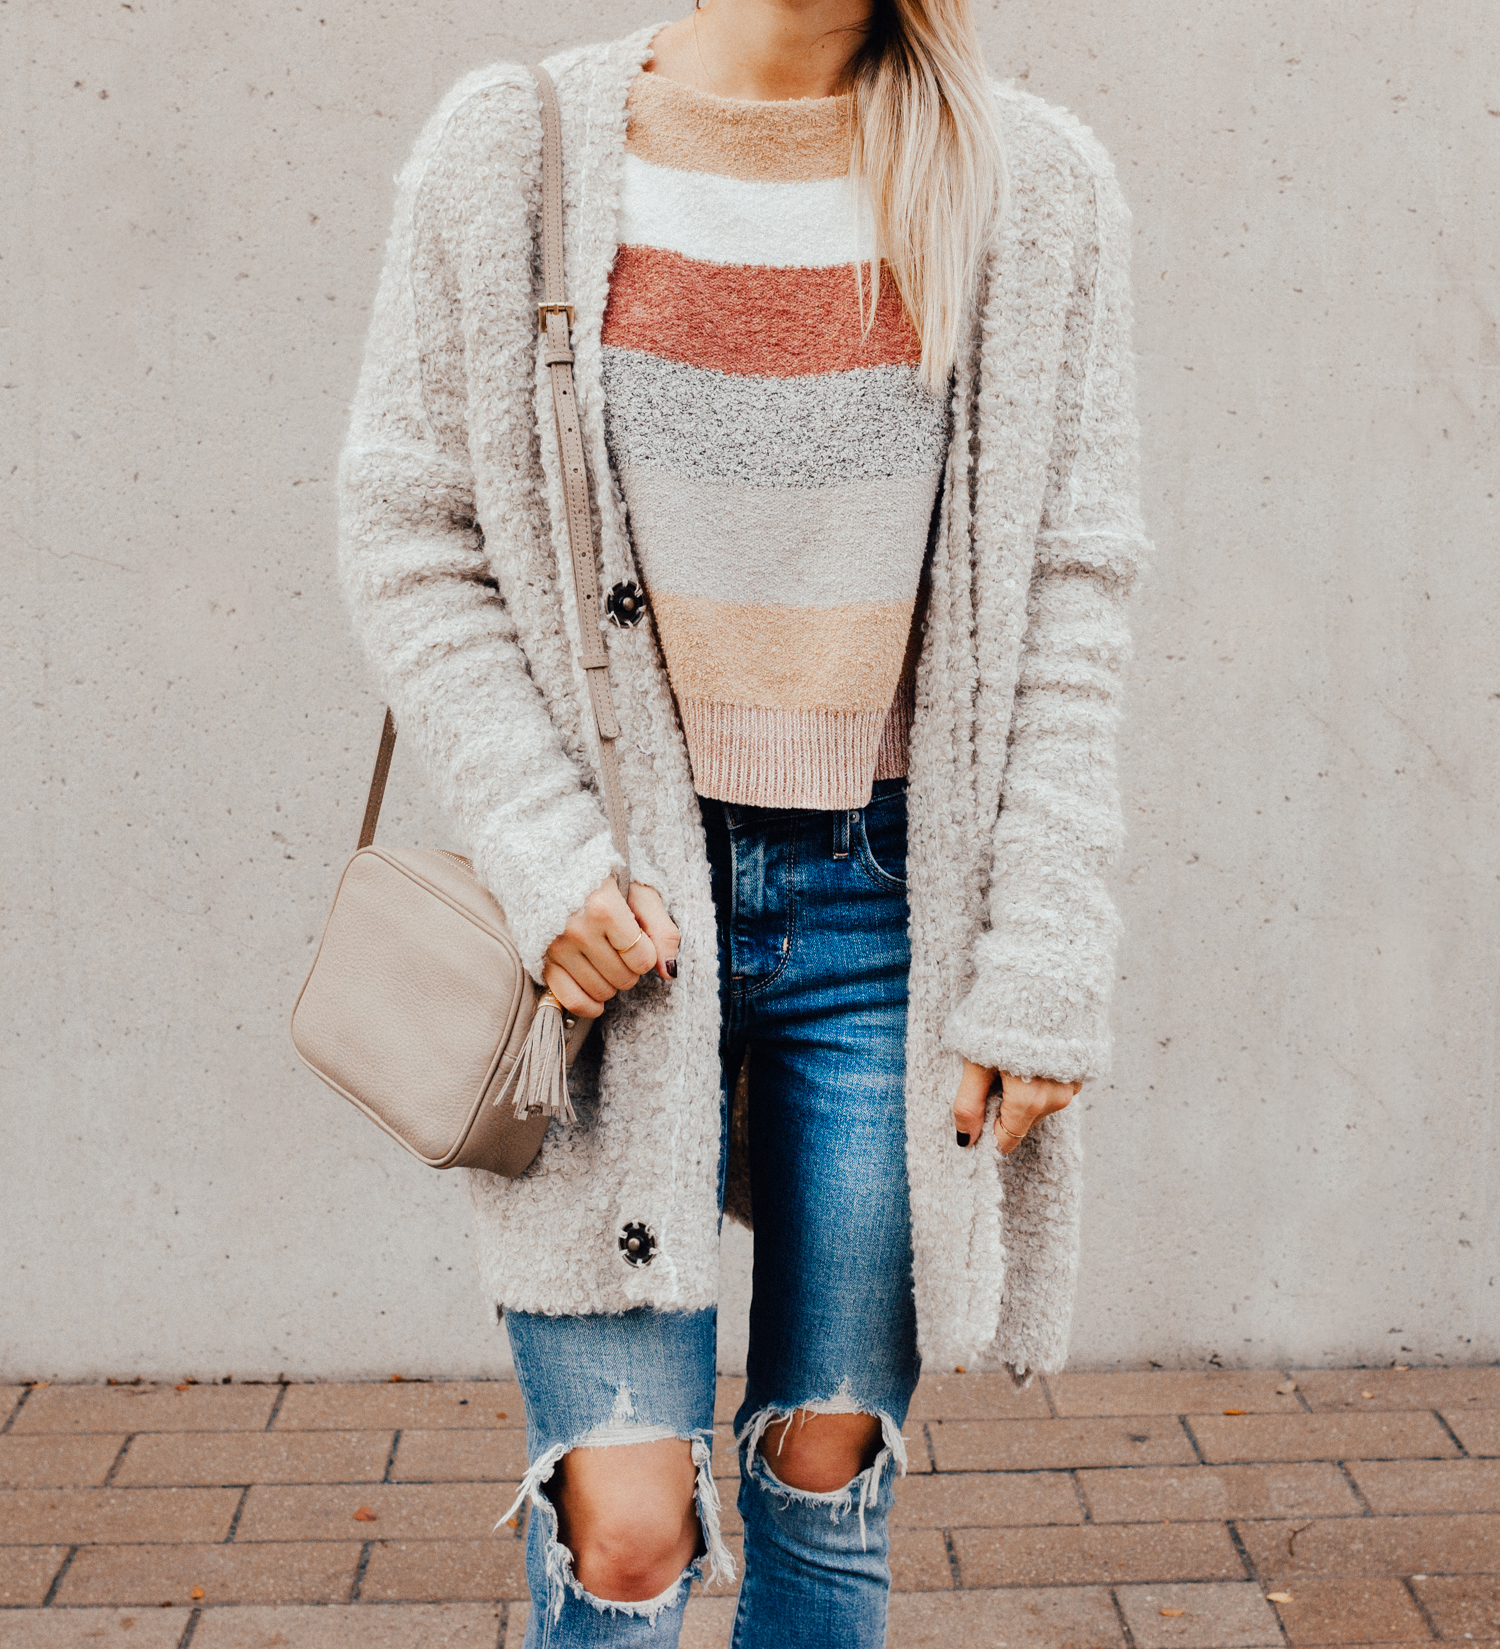 livvyland-blog-olivia-watson-free-people-blush-beige-tan-sweater-tassel-slides-cozy-layers-7